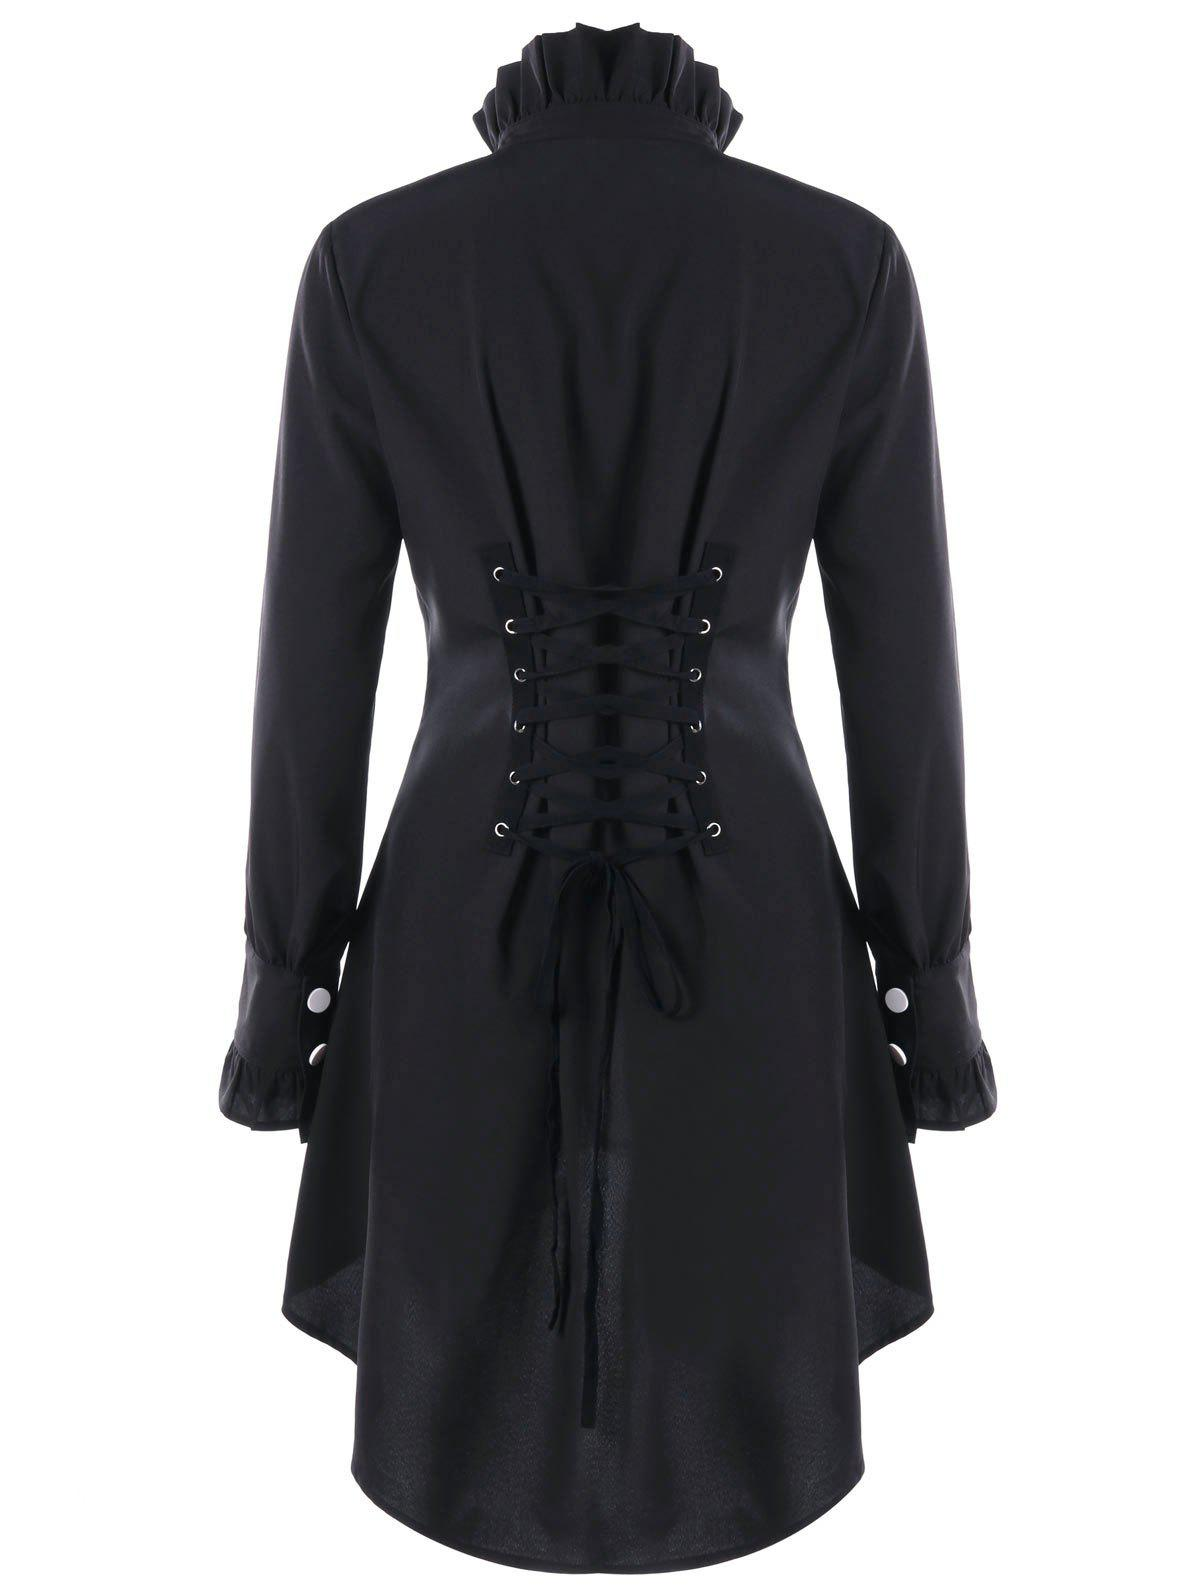 Ruffle Collar Lace Up High Low Hem CoatWOMEN<br><br>Size: L; Color: BLACK; Clothes Type: Trench; Material: Polyester; Type: Slim; Shirt Length: Long; Sleeve Length: Full; Collar: Ruff Collar; Pattern Type: Solid; Style: Gothic; Season: Fall,Spring; Weight: 0.3000kg; Package Contents: 1 x Coat;